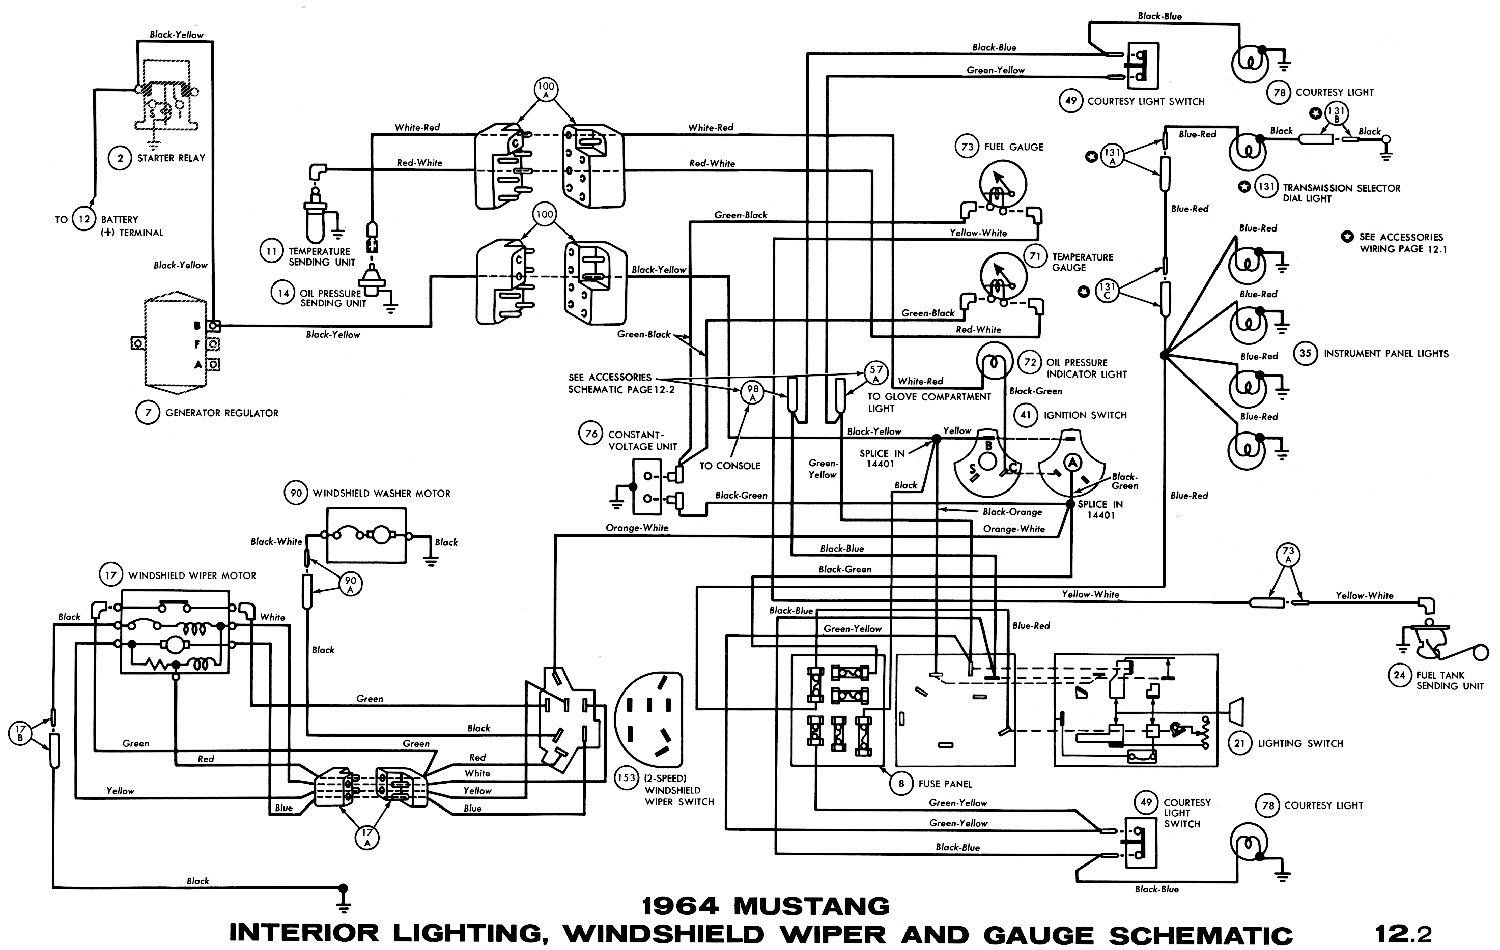 1966 Ford Mustang Wiring Diagram Trusted Wiring Diagram Inside